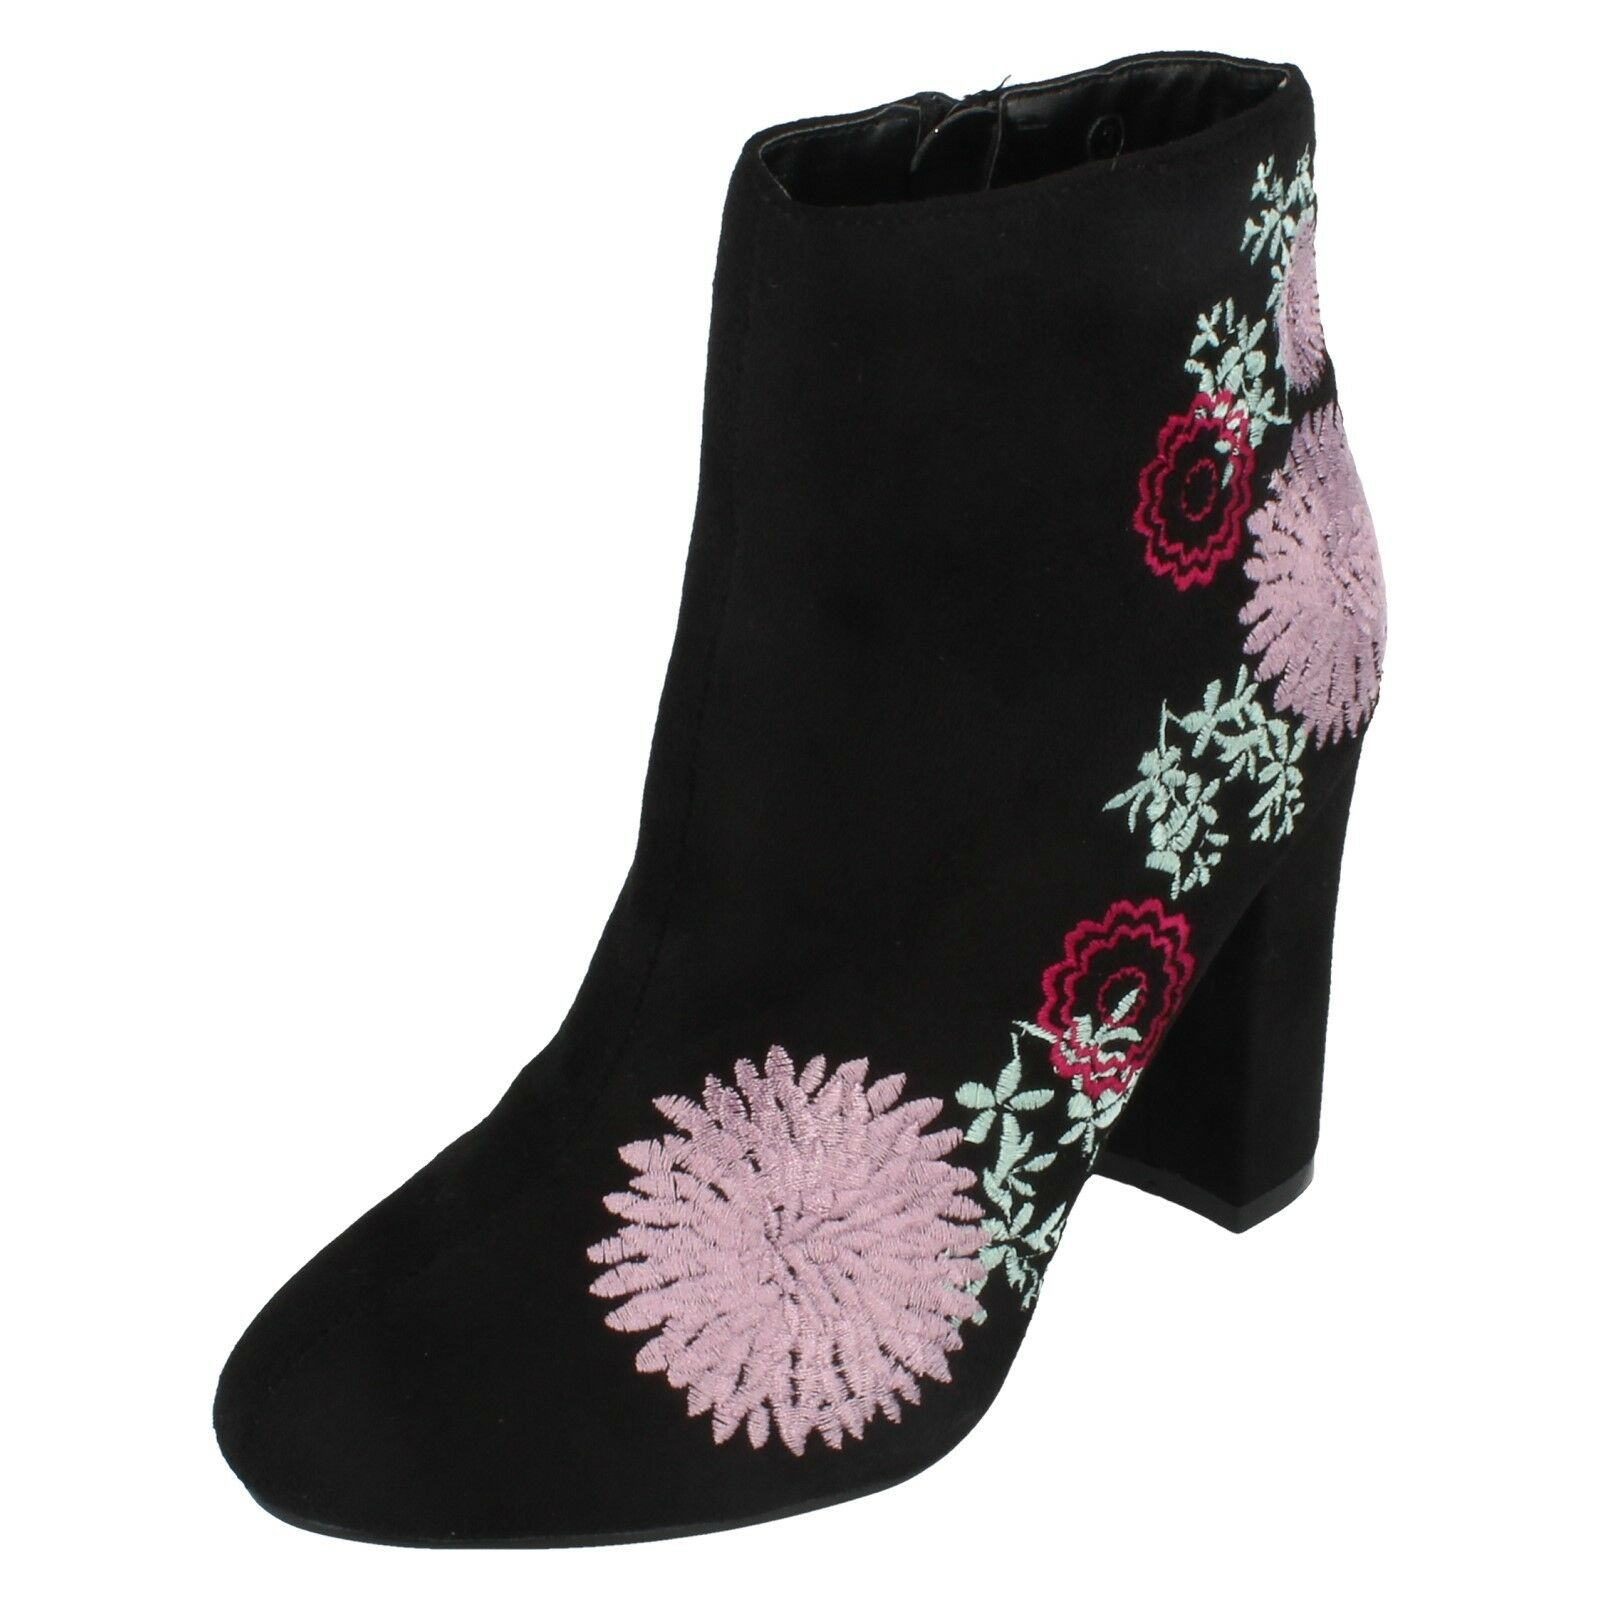 Ladies FRelicity Faux Suede Floral Embroidered Block Heel Boot By Dolcis retail